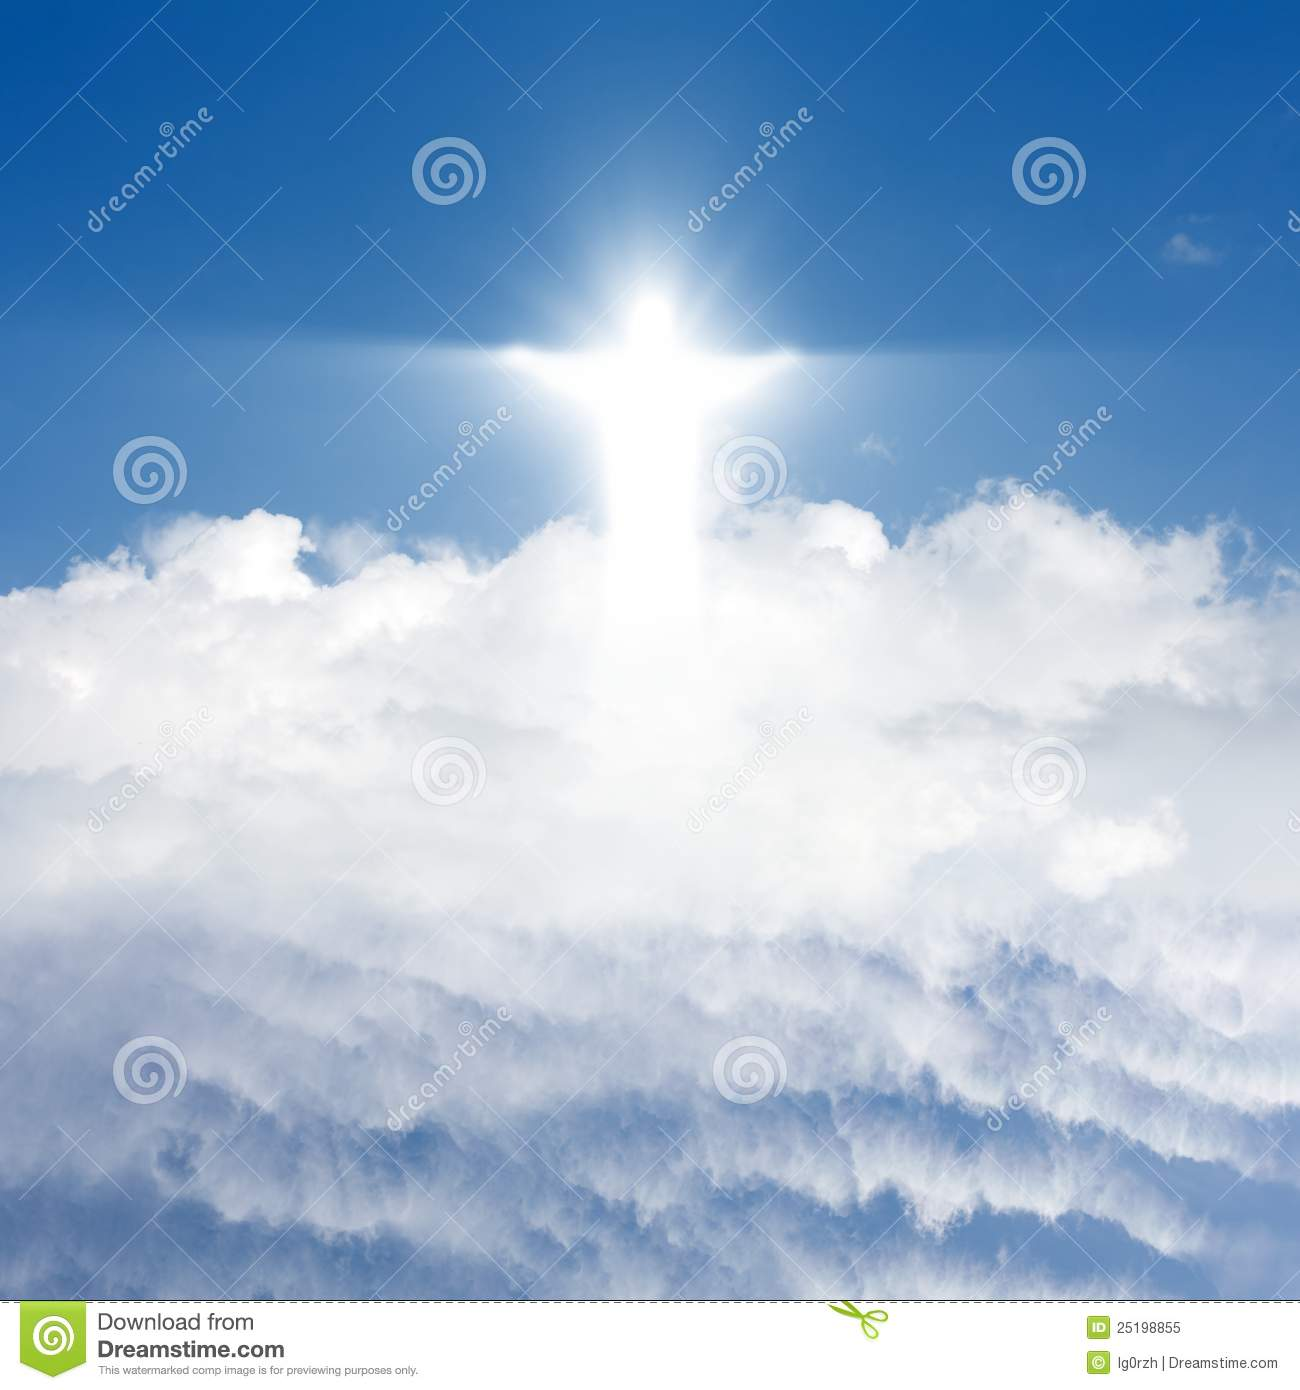 Christ In Sky Royalty Free Stock Photo - Image: 25198855